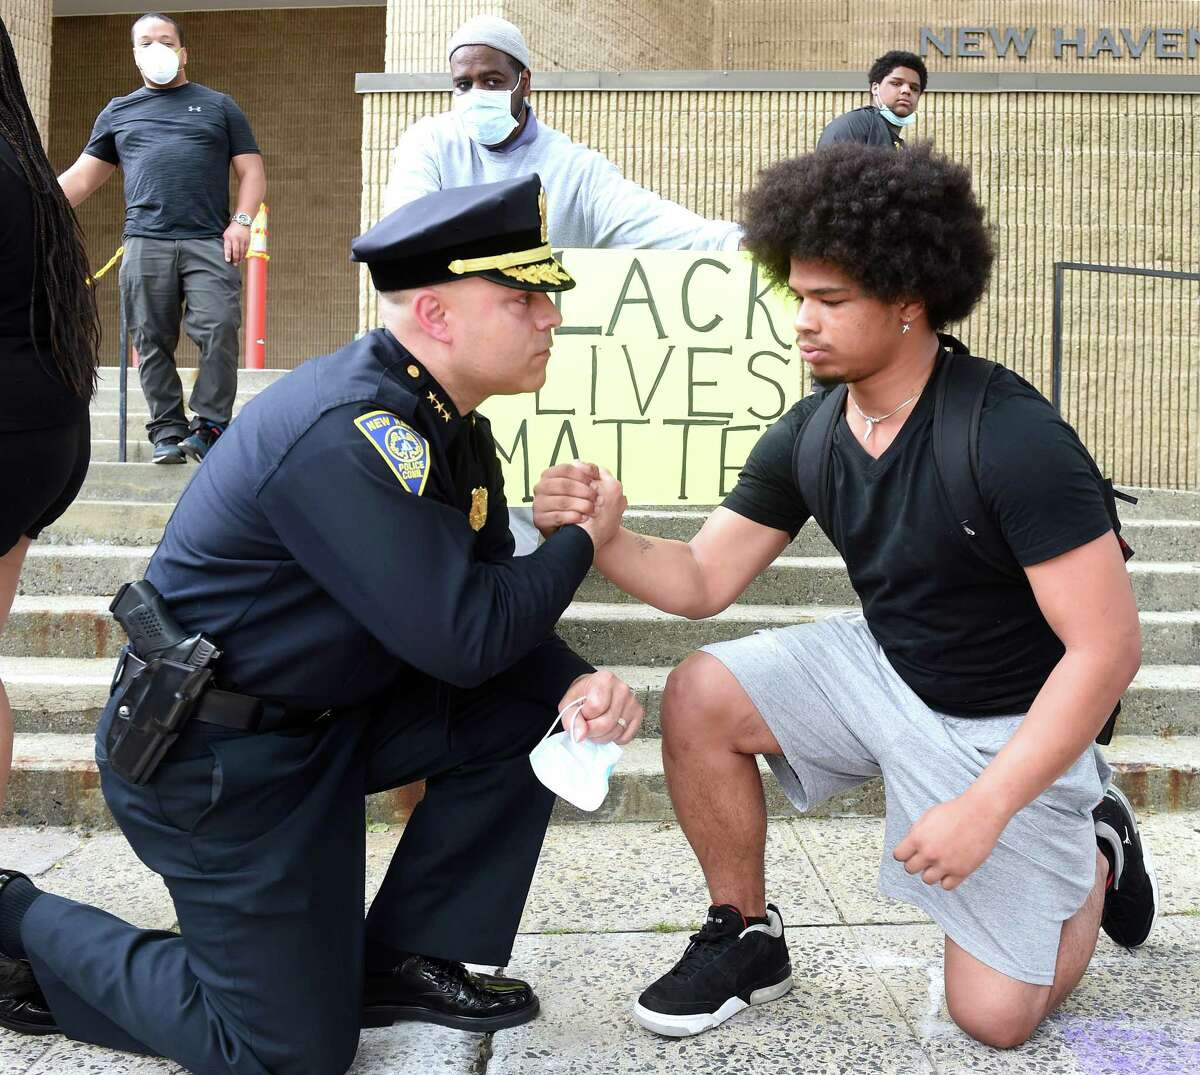 New Haven Police Chief Otoniel Reyes (left) takes a knee to the ground with Wilbur Cross junior Jabez Cubiz, 18, in front of the New Haven Police Department after the chief met with protesters on June 3, 2020 in the aftermath of the death of George Floyd at the hands of Minneapolis Police.